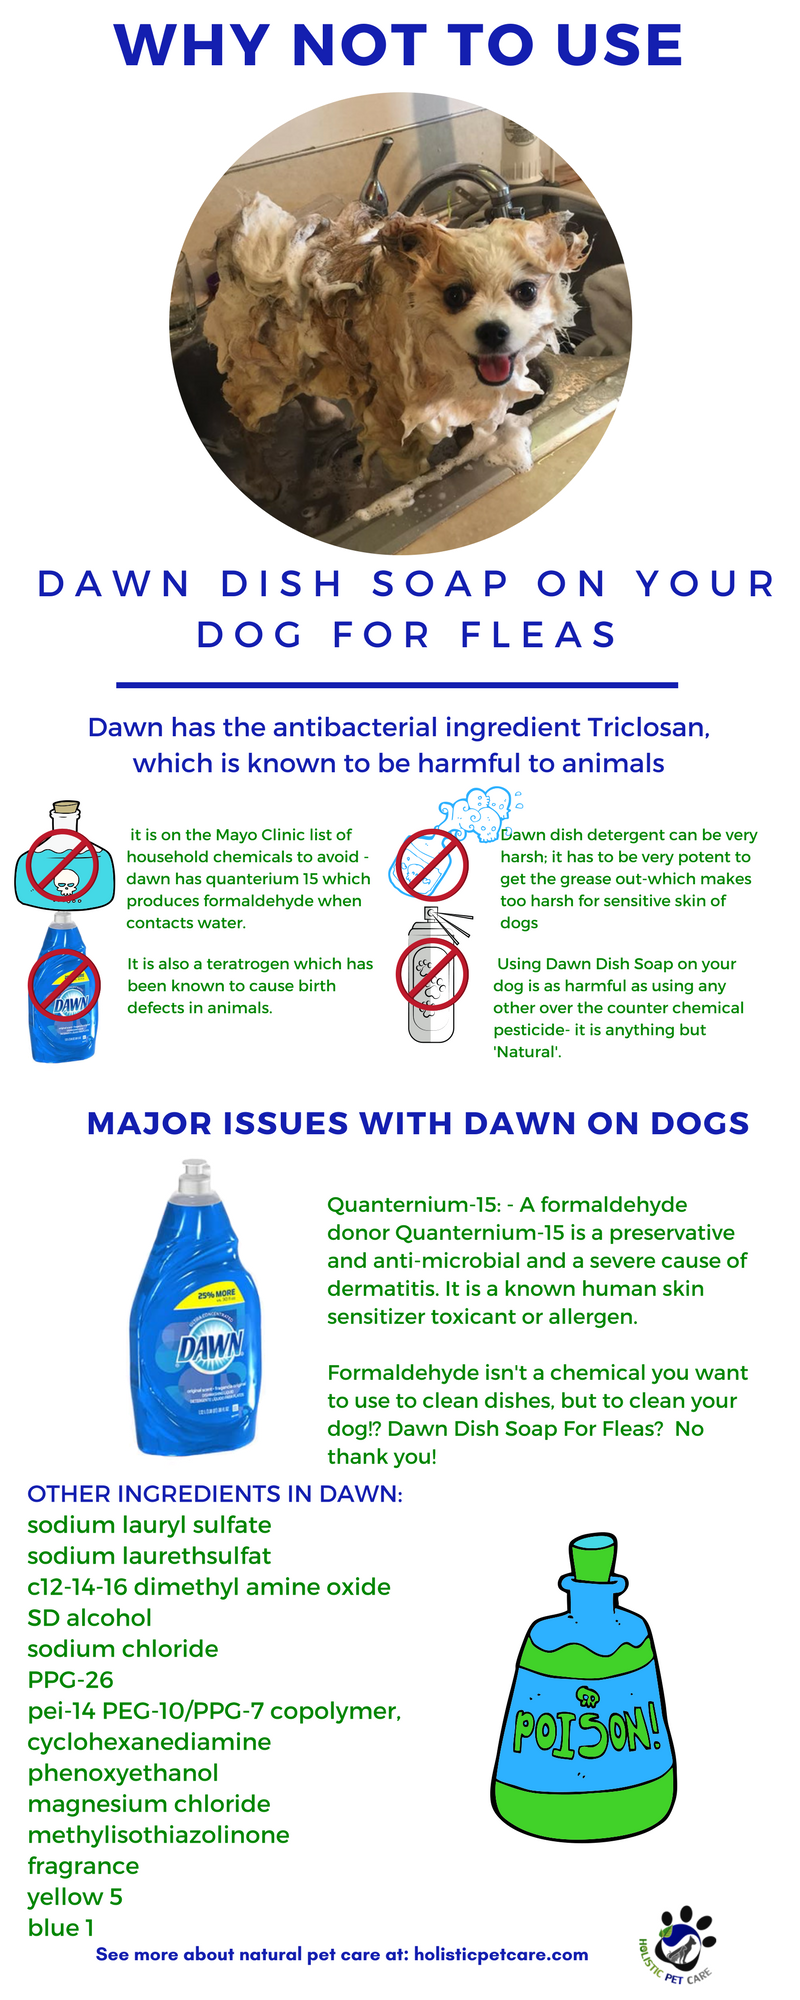 Is dawn dish soap good for fleas